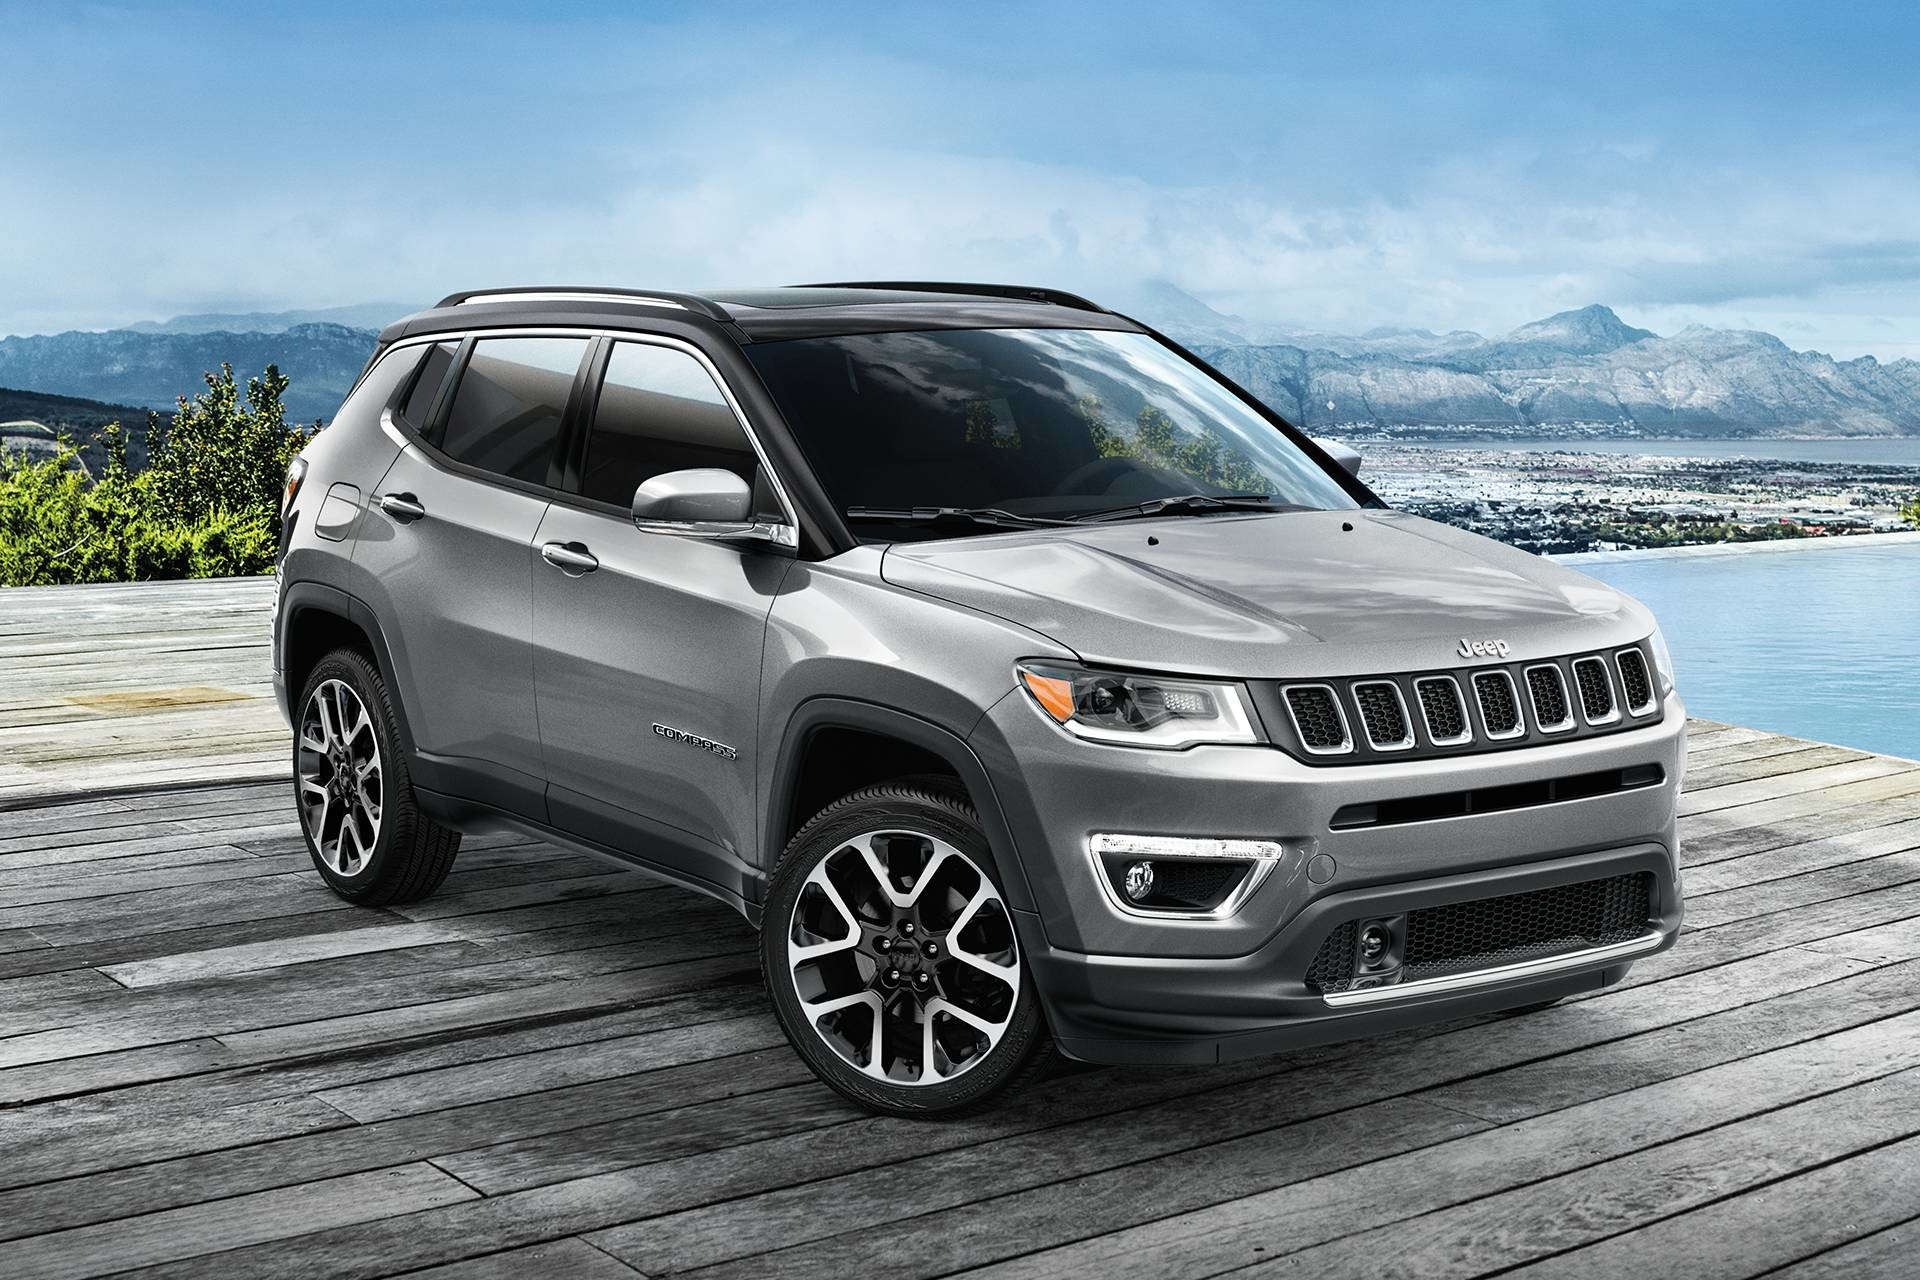 2019 Jeep Compass parked in charcoal grey